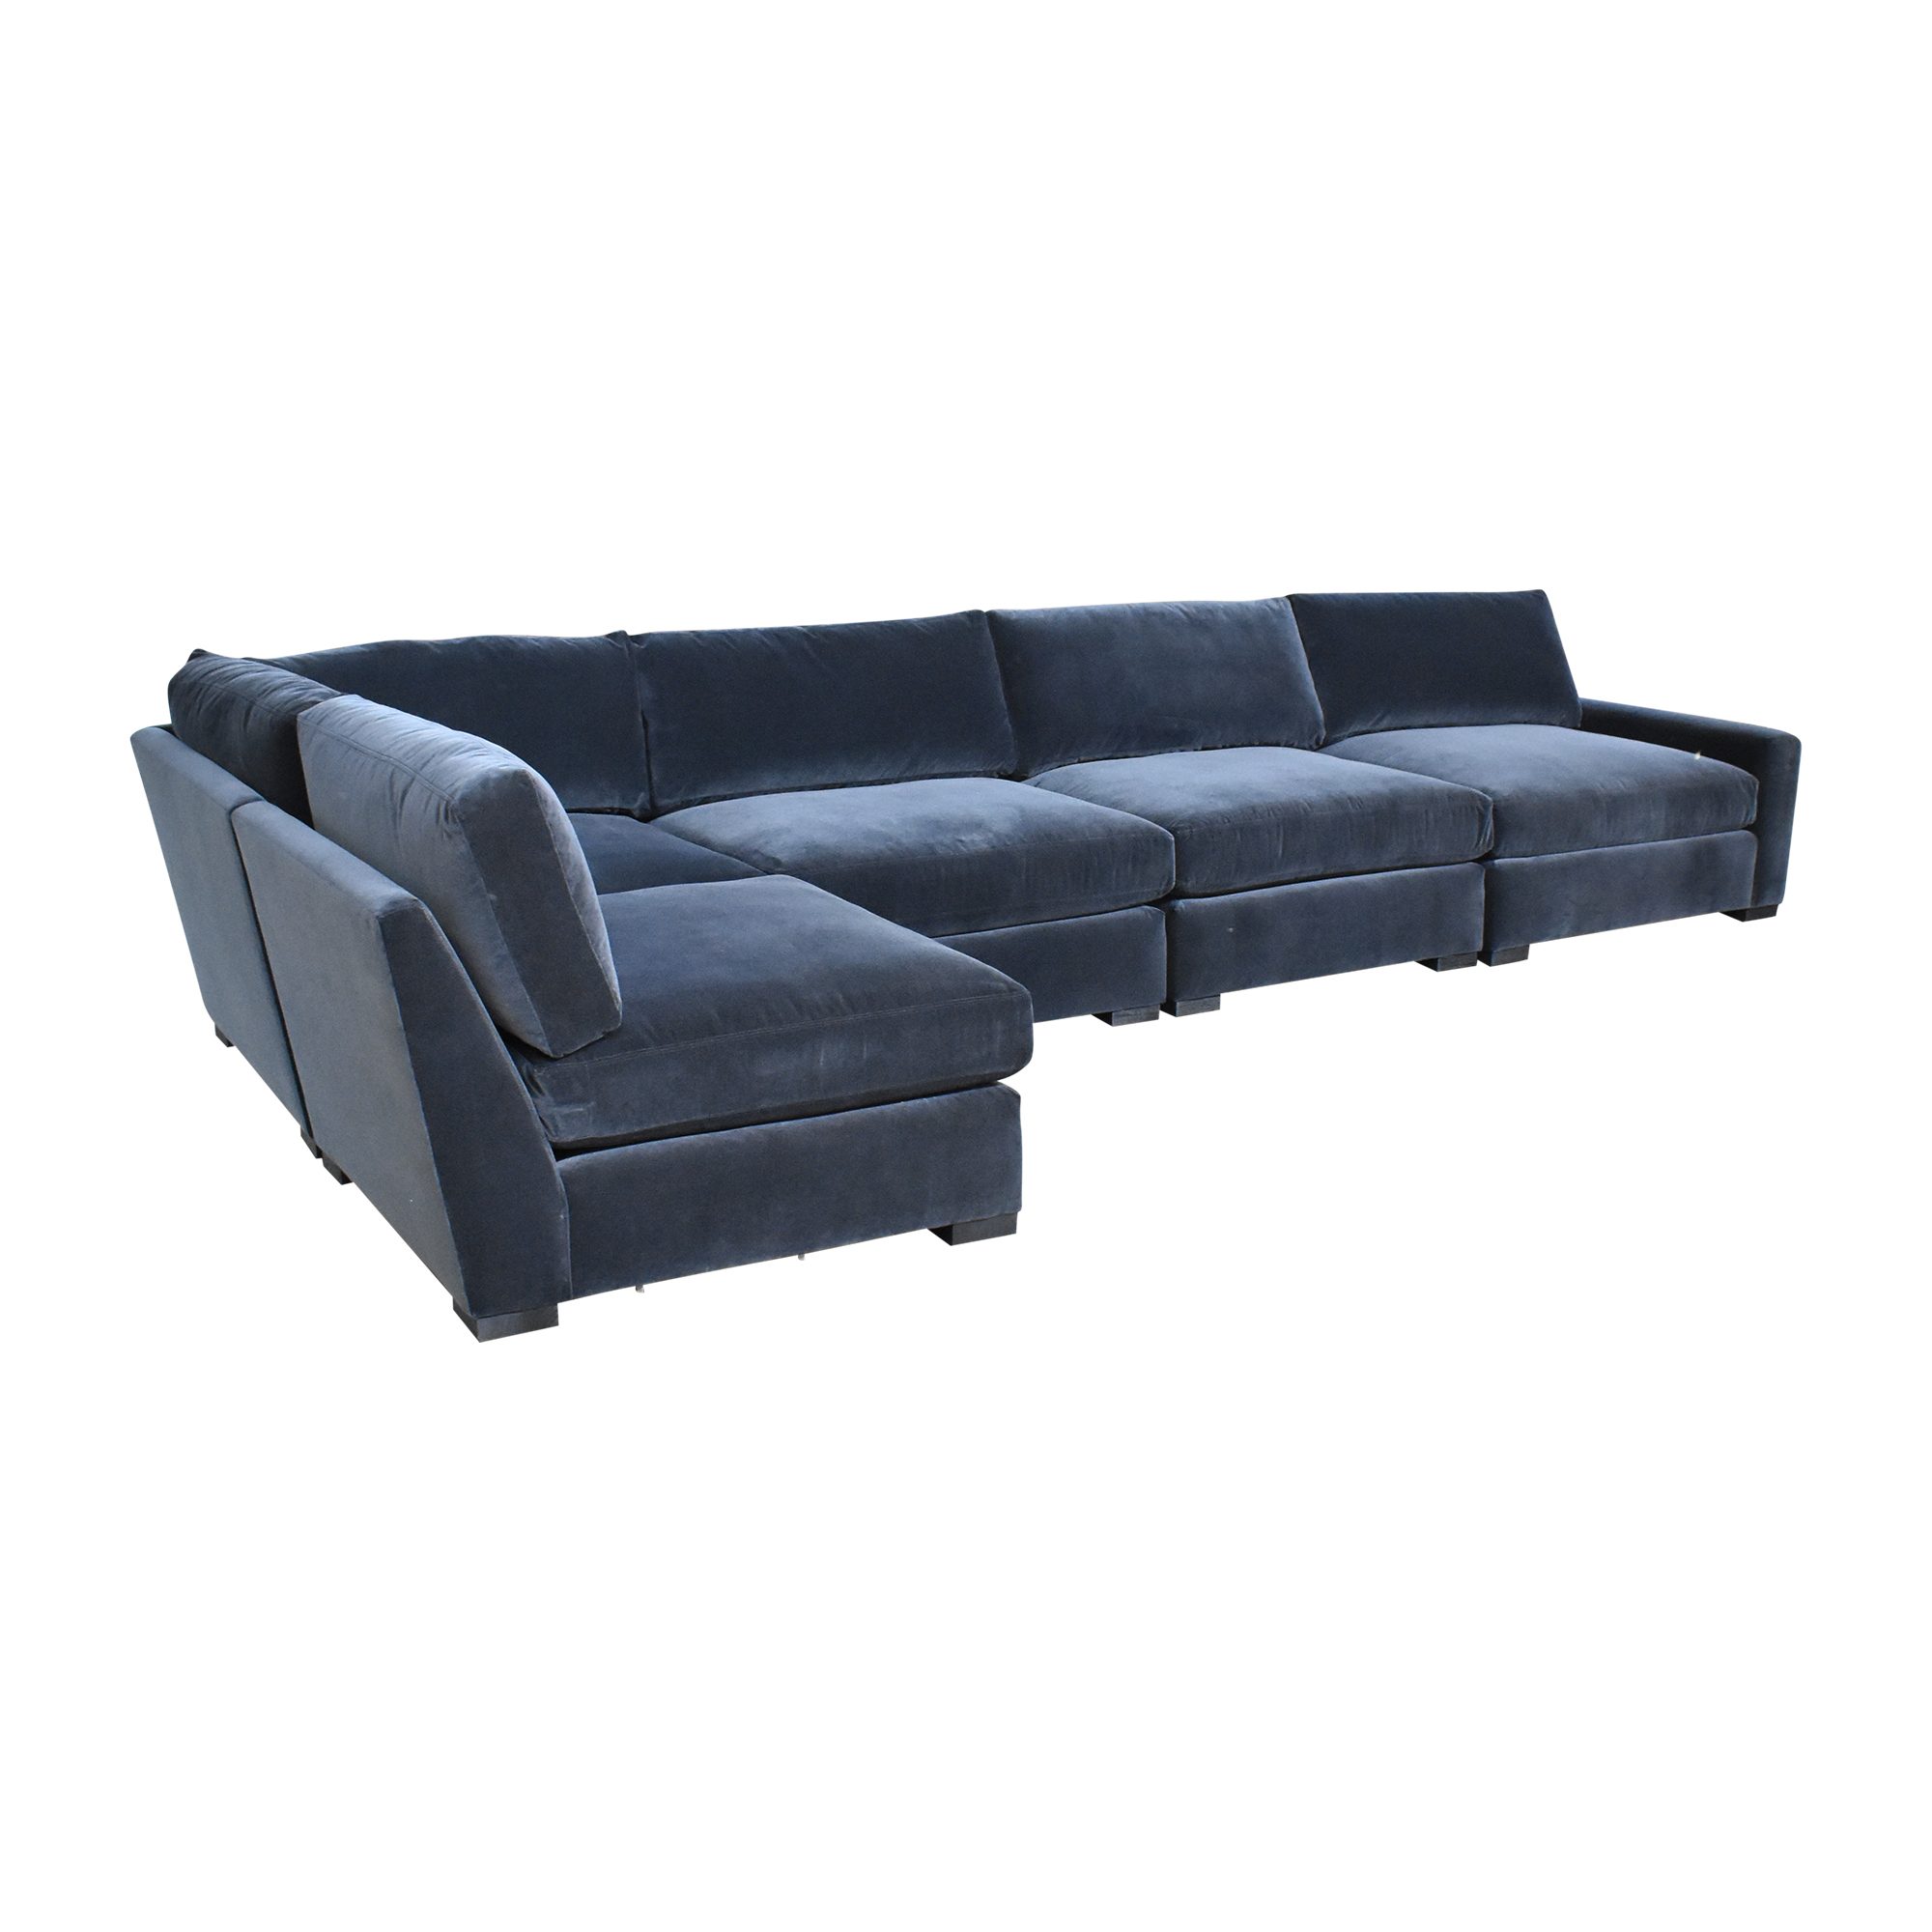 Restoration Hardware Restoration Hardware Maxwell L Shaped Sectional Sofa second hand